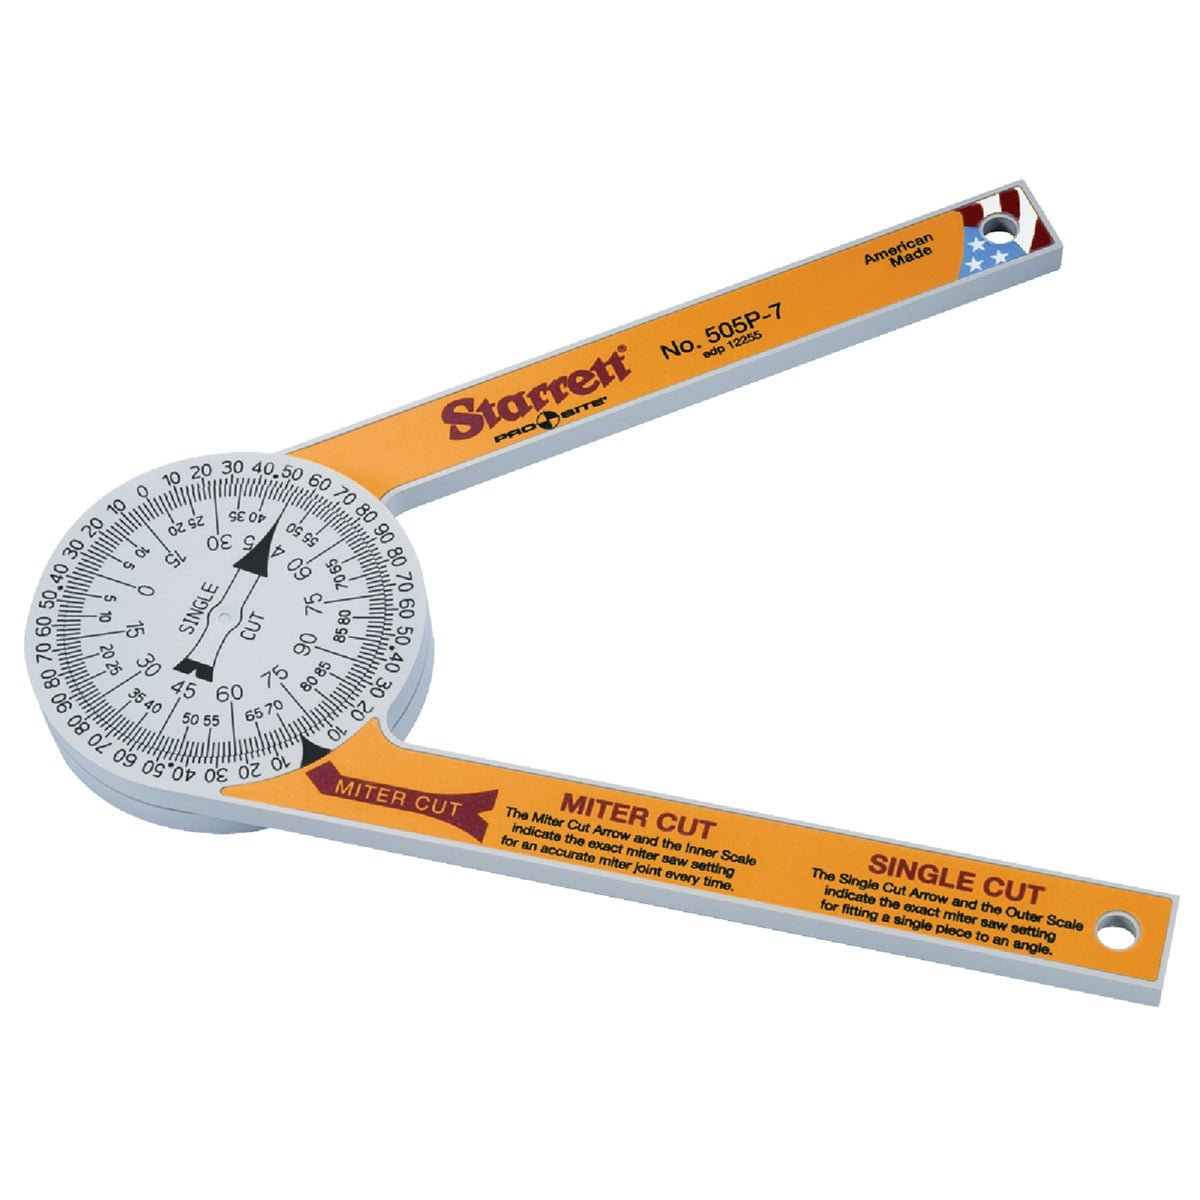 "PROSITE 7"" PROTRACTOR - 505P-7 by Starrett L S Co"